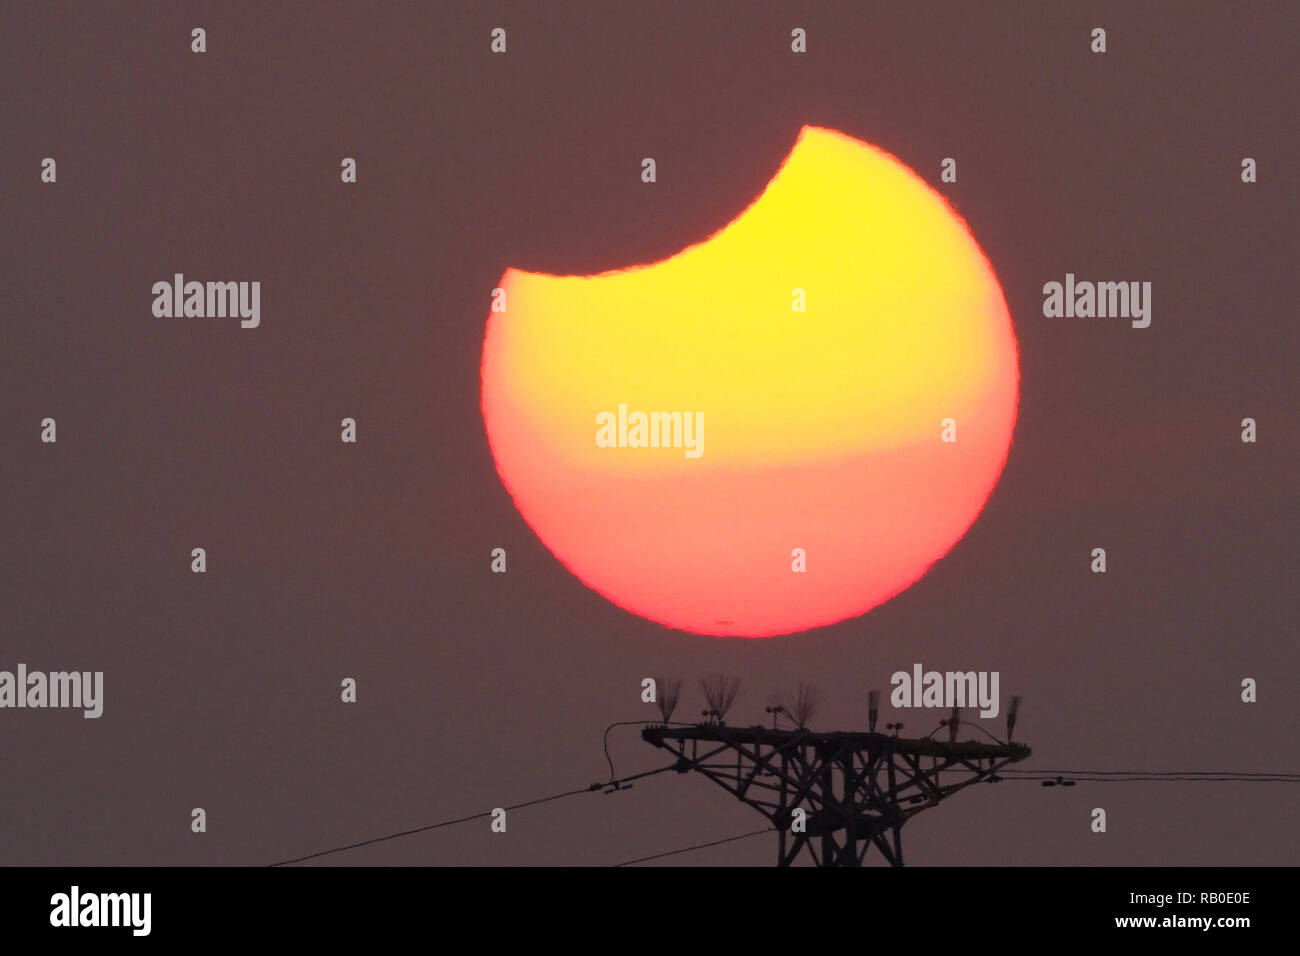 Beijing, China. 6th Jan, 2019. A partial solar eclipse is observed as the moon passes in front of the sun in Beijing, capital of China, Jan. 6, 2019. Credit: Wang Junfeng/Xinhua/Alamy Live News - Stock Image